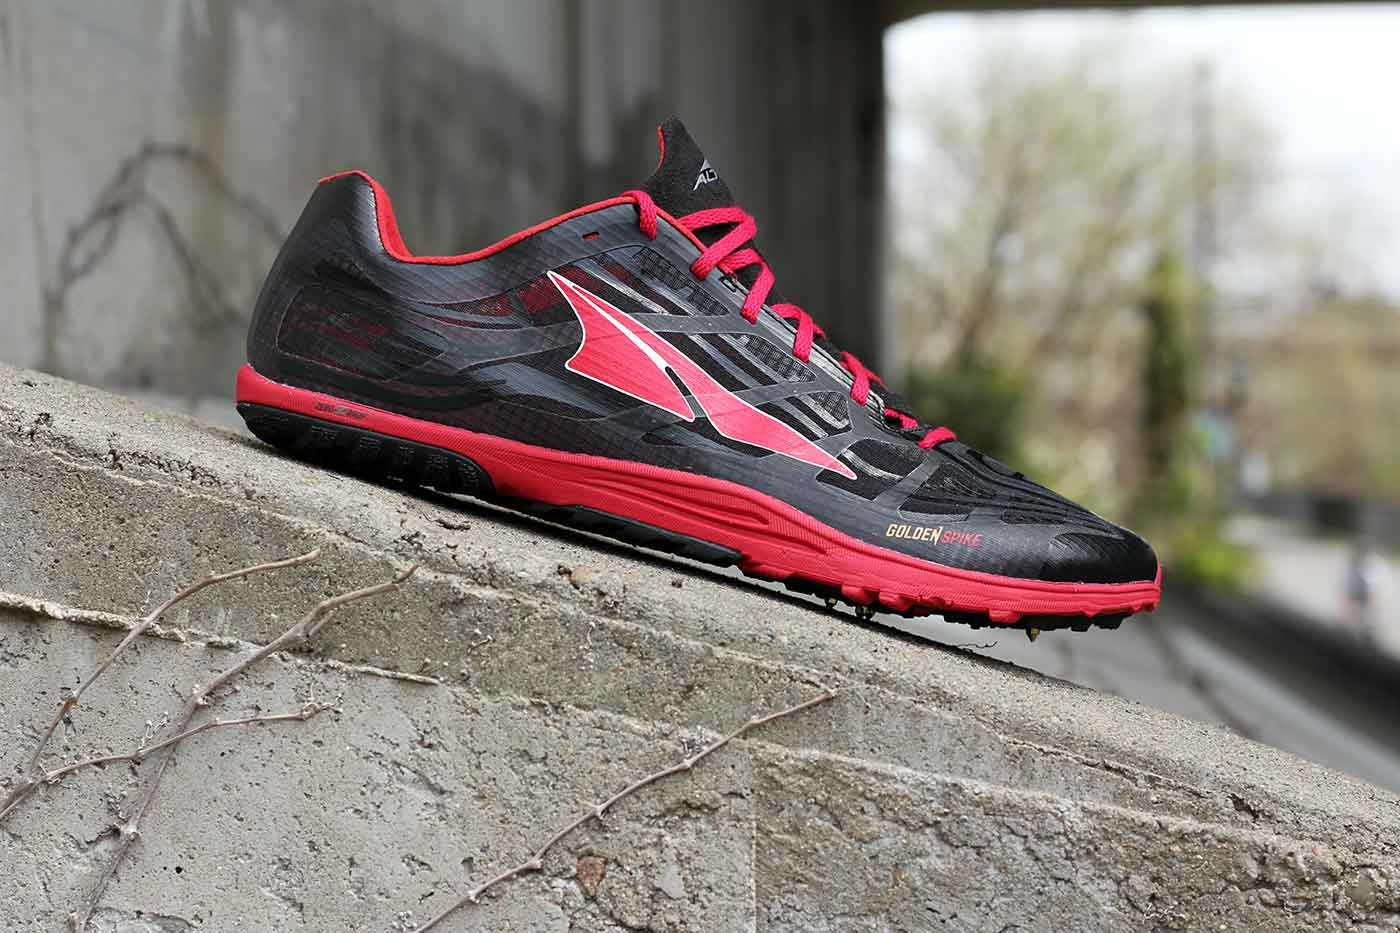 altra-spike-shoes